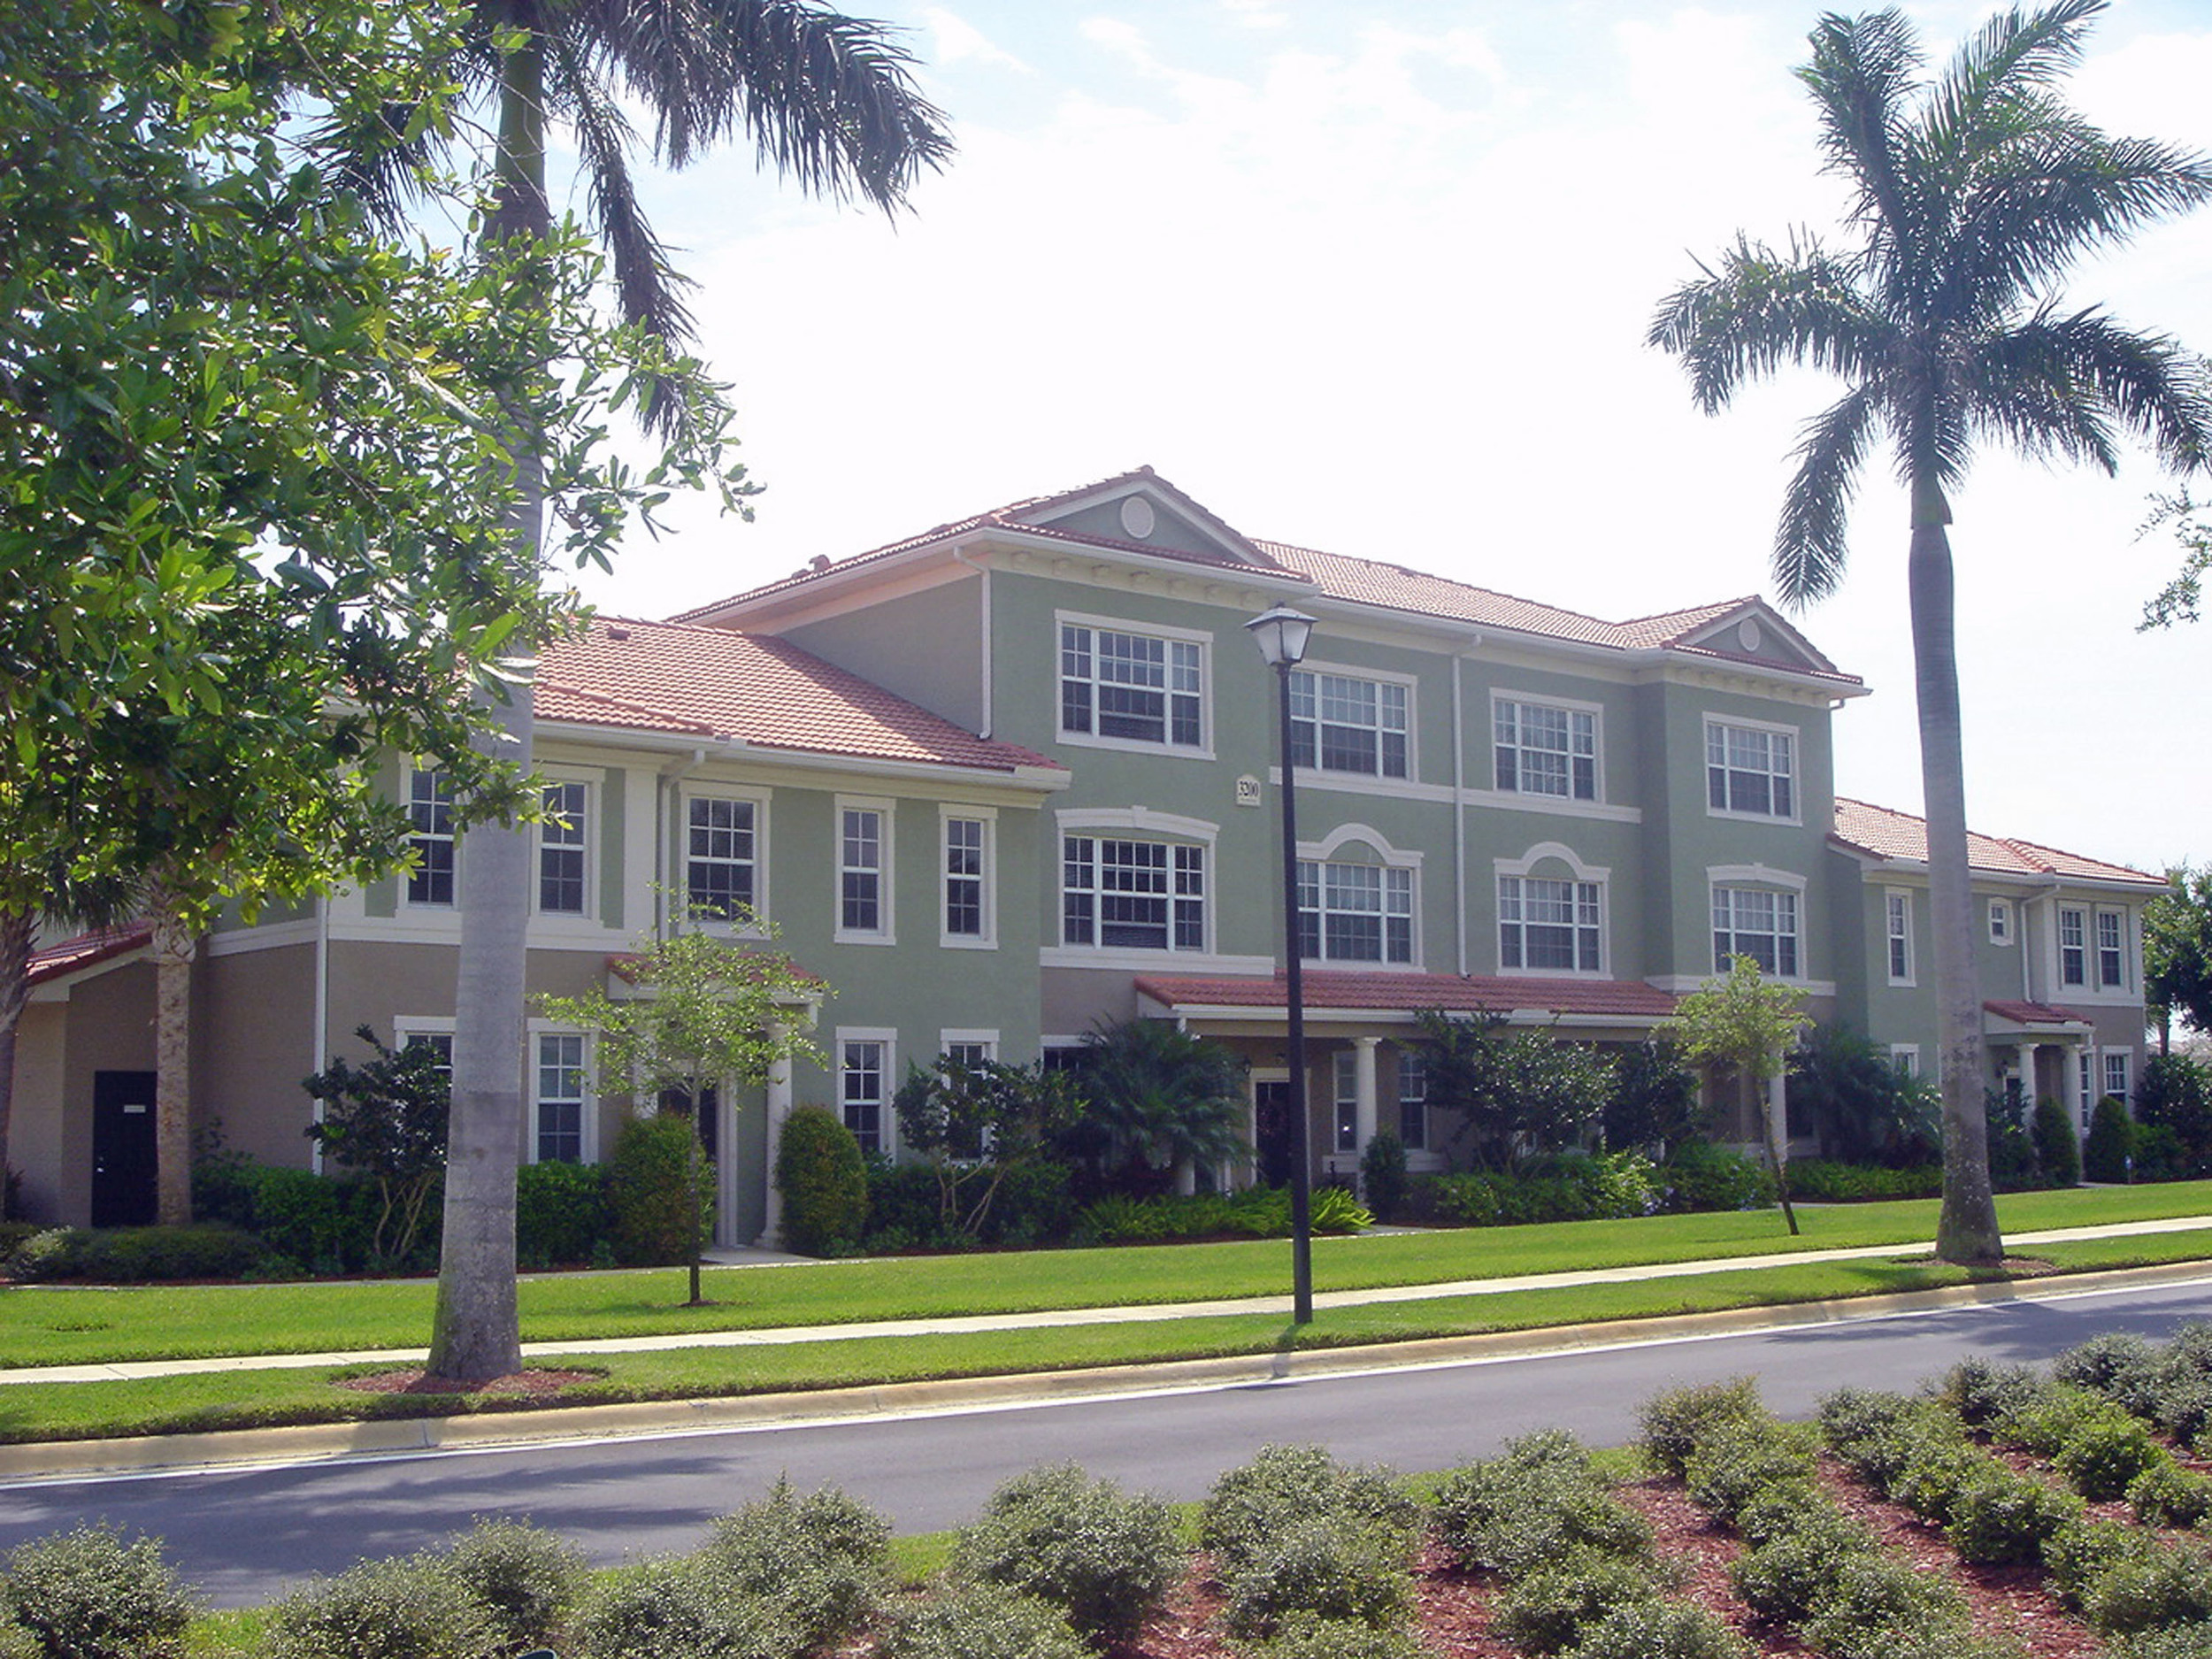 The Gables Floresta Jupiter Florida  Multifamily Residential.jpg